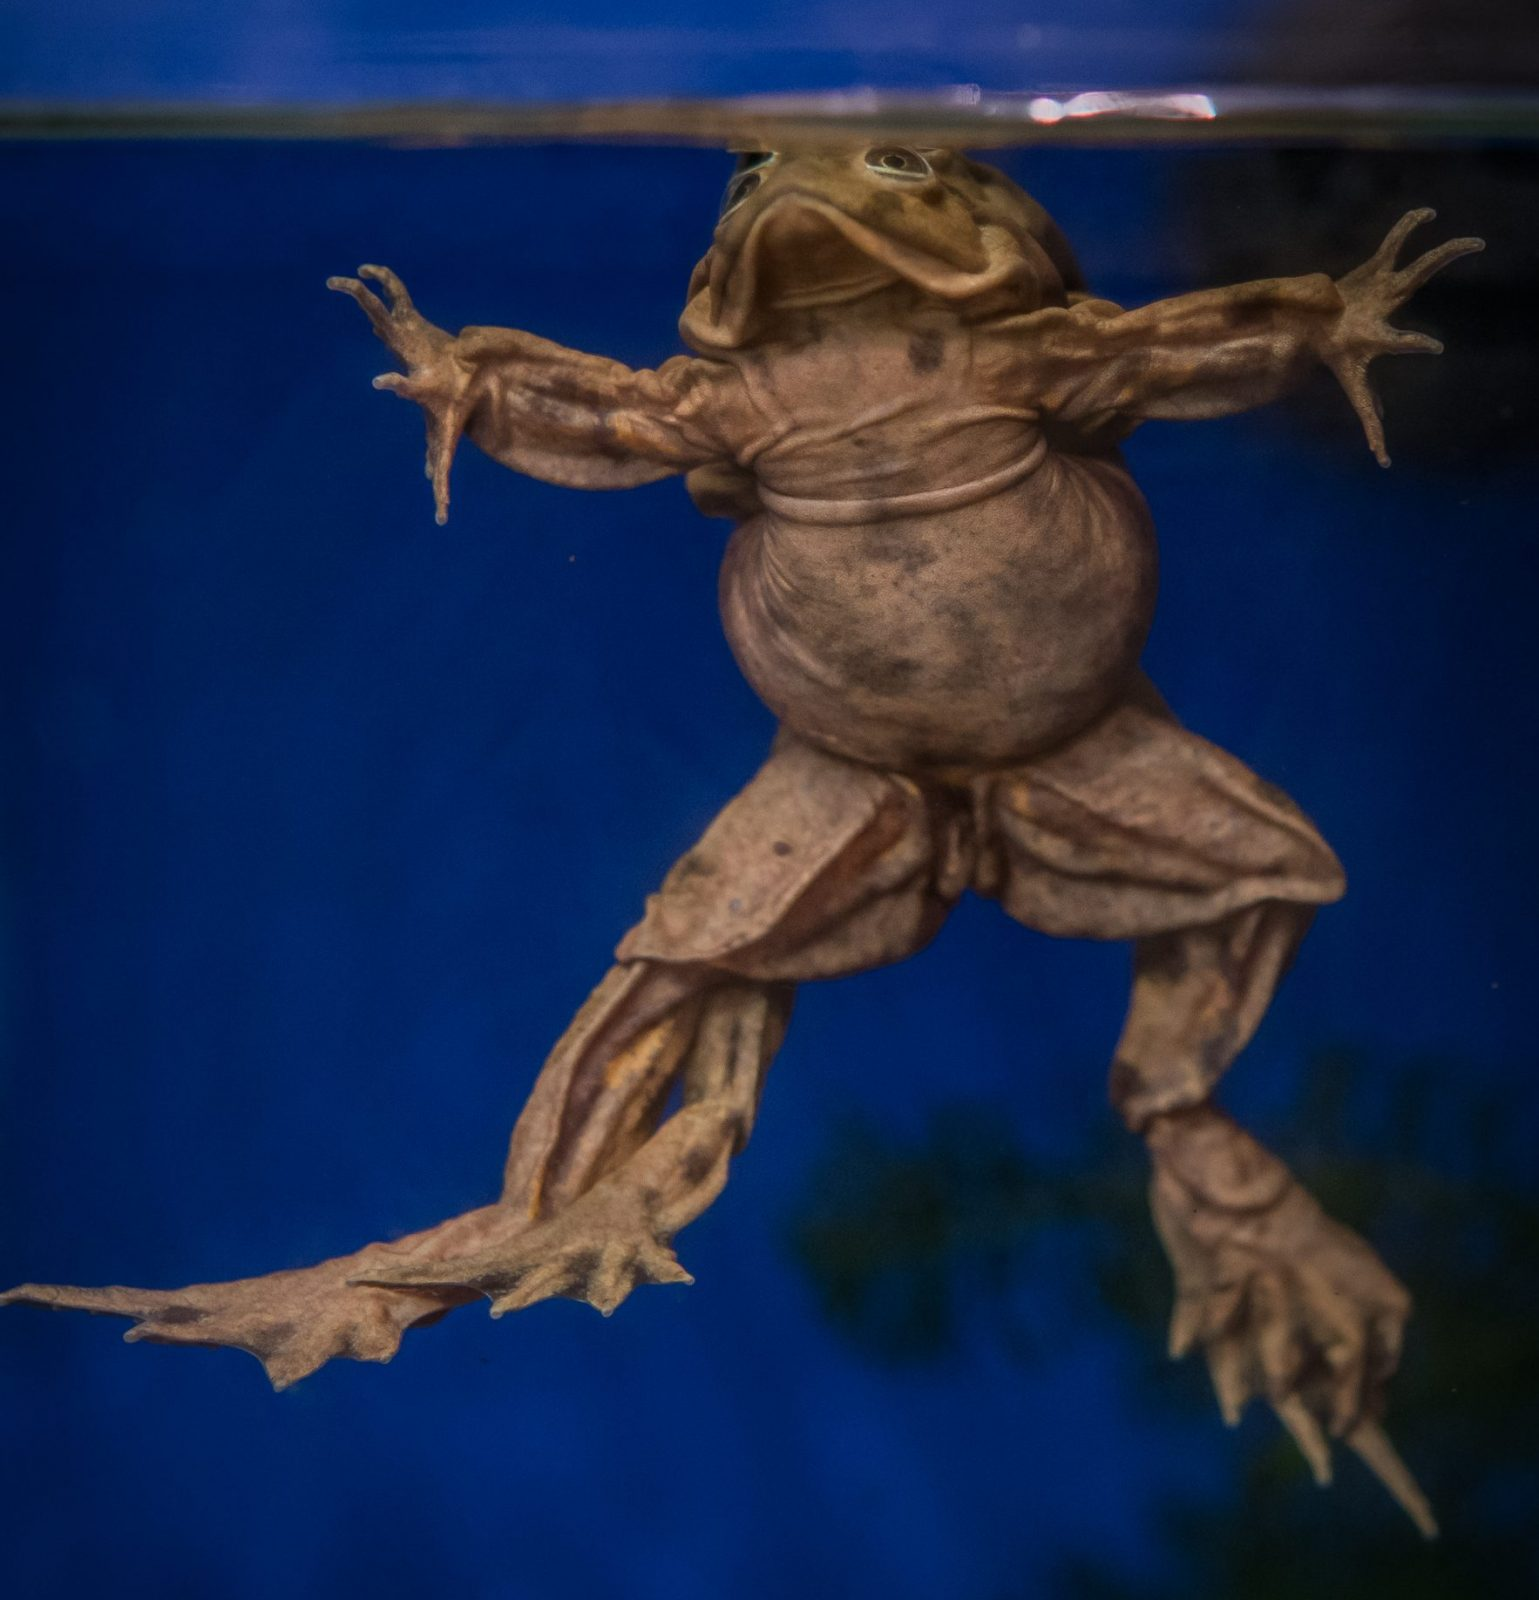 Rare 'scrotum' frogs on the edge of extinction go on display at Chester Zoo, The Manc